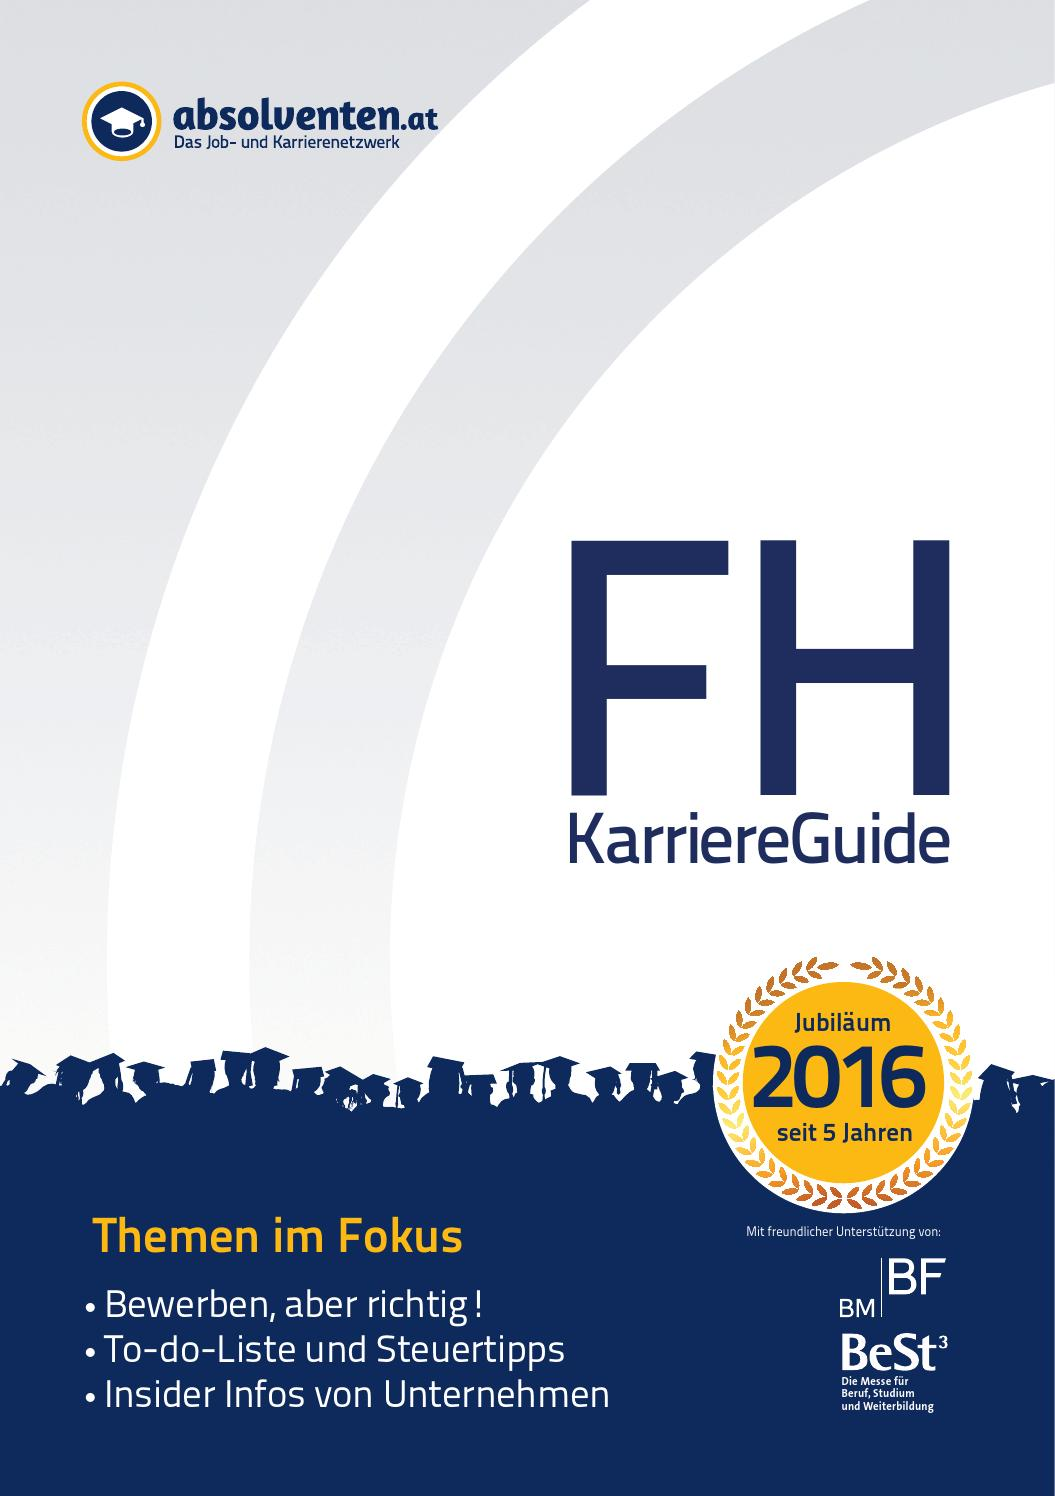 absolventen.at FH-KarriereGuide 2016 by Business Cluster Network GmbH -  issuu